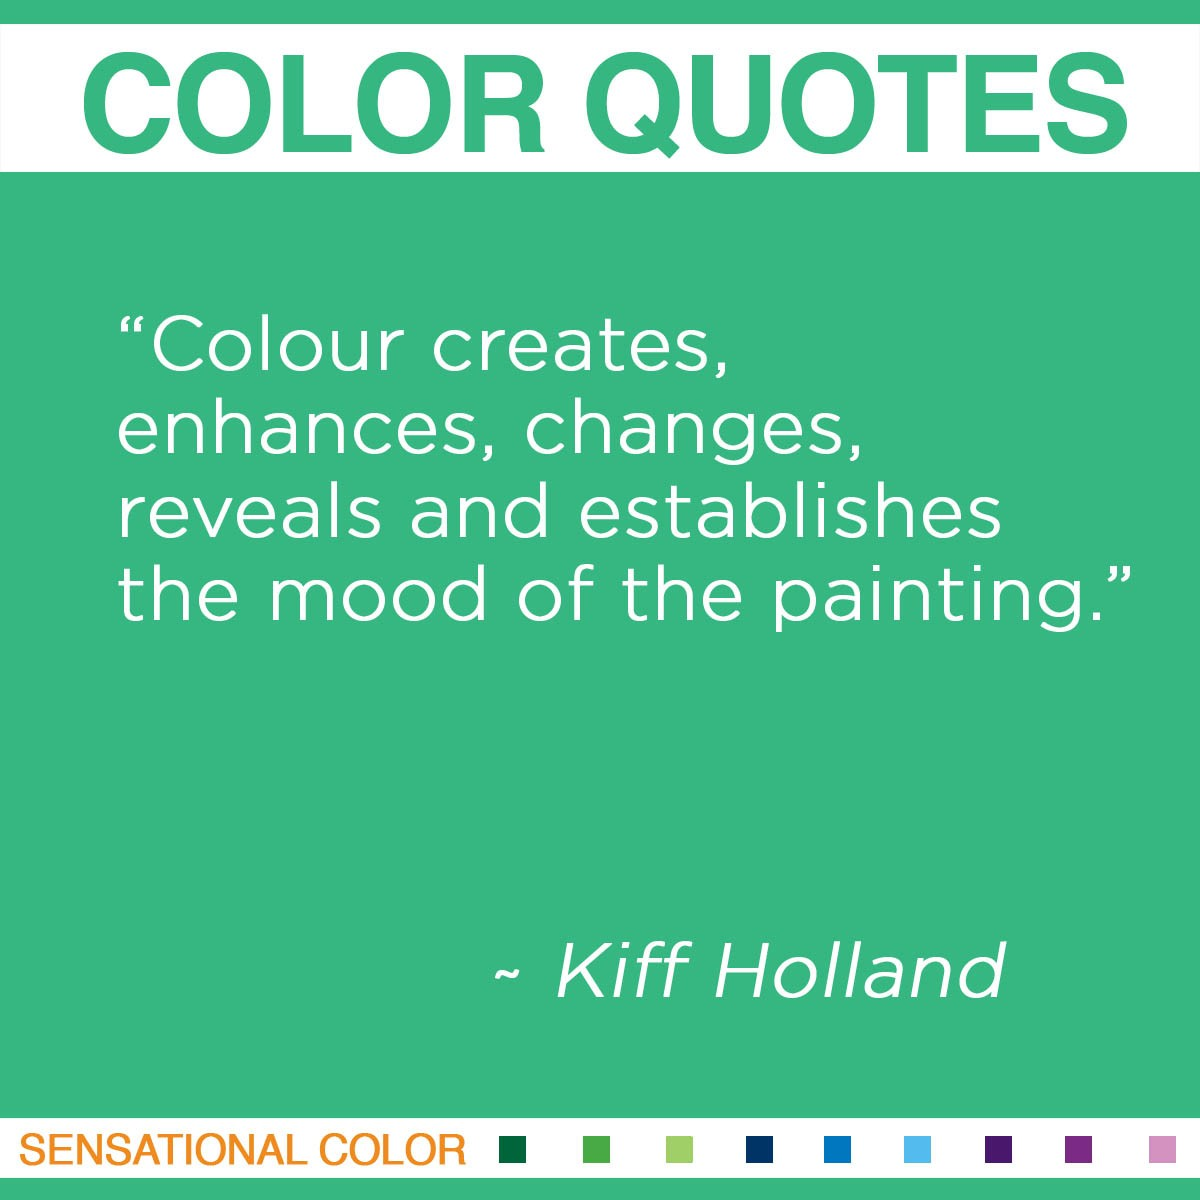 """Colour creates, enhances, changes, reveals and establishes the mood of the painting."" - Kiff Holland"